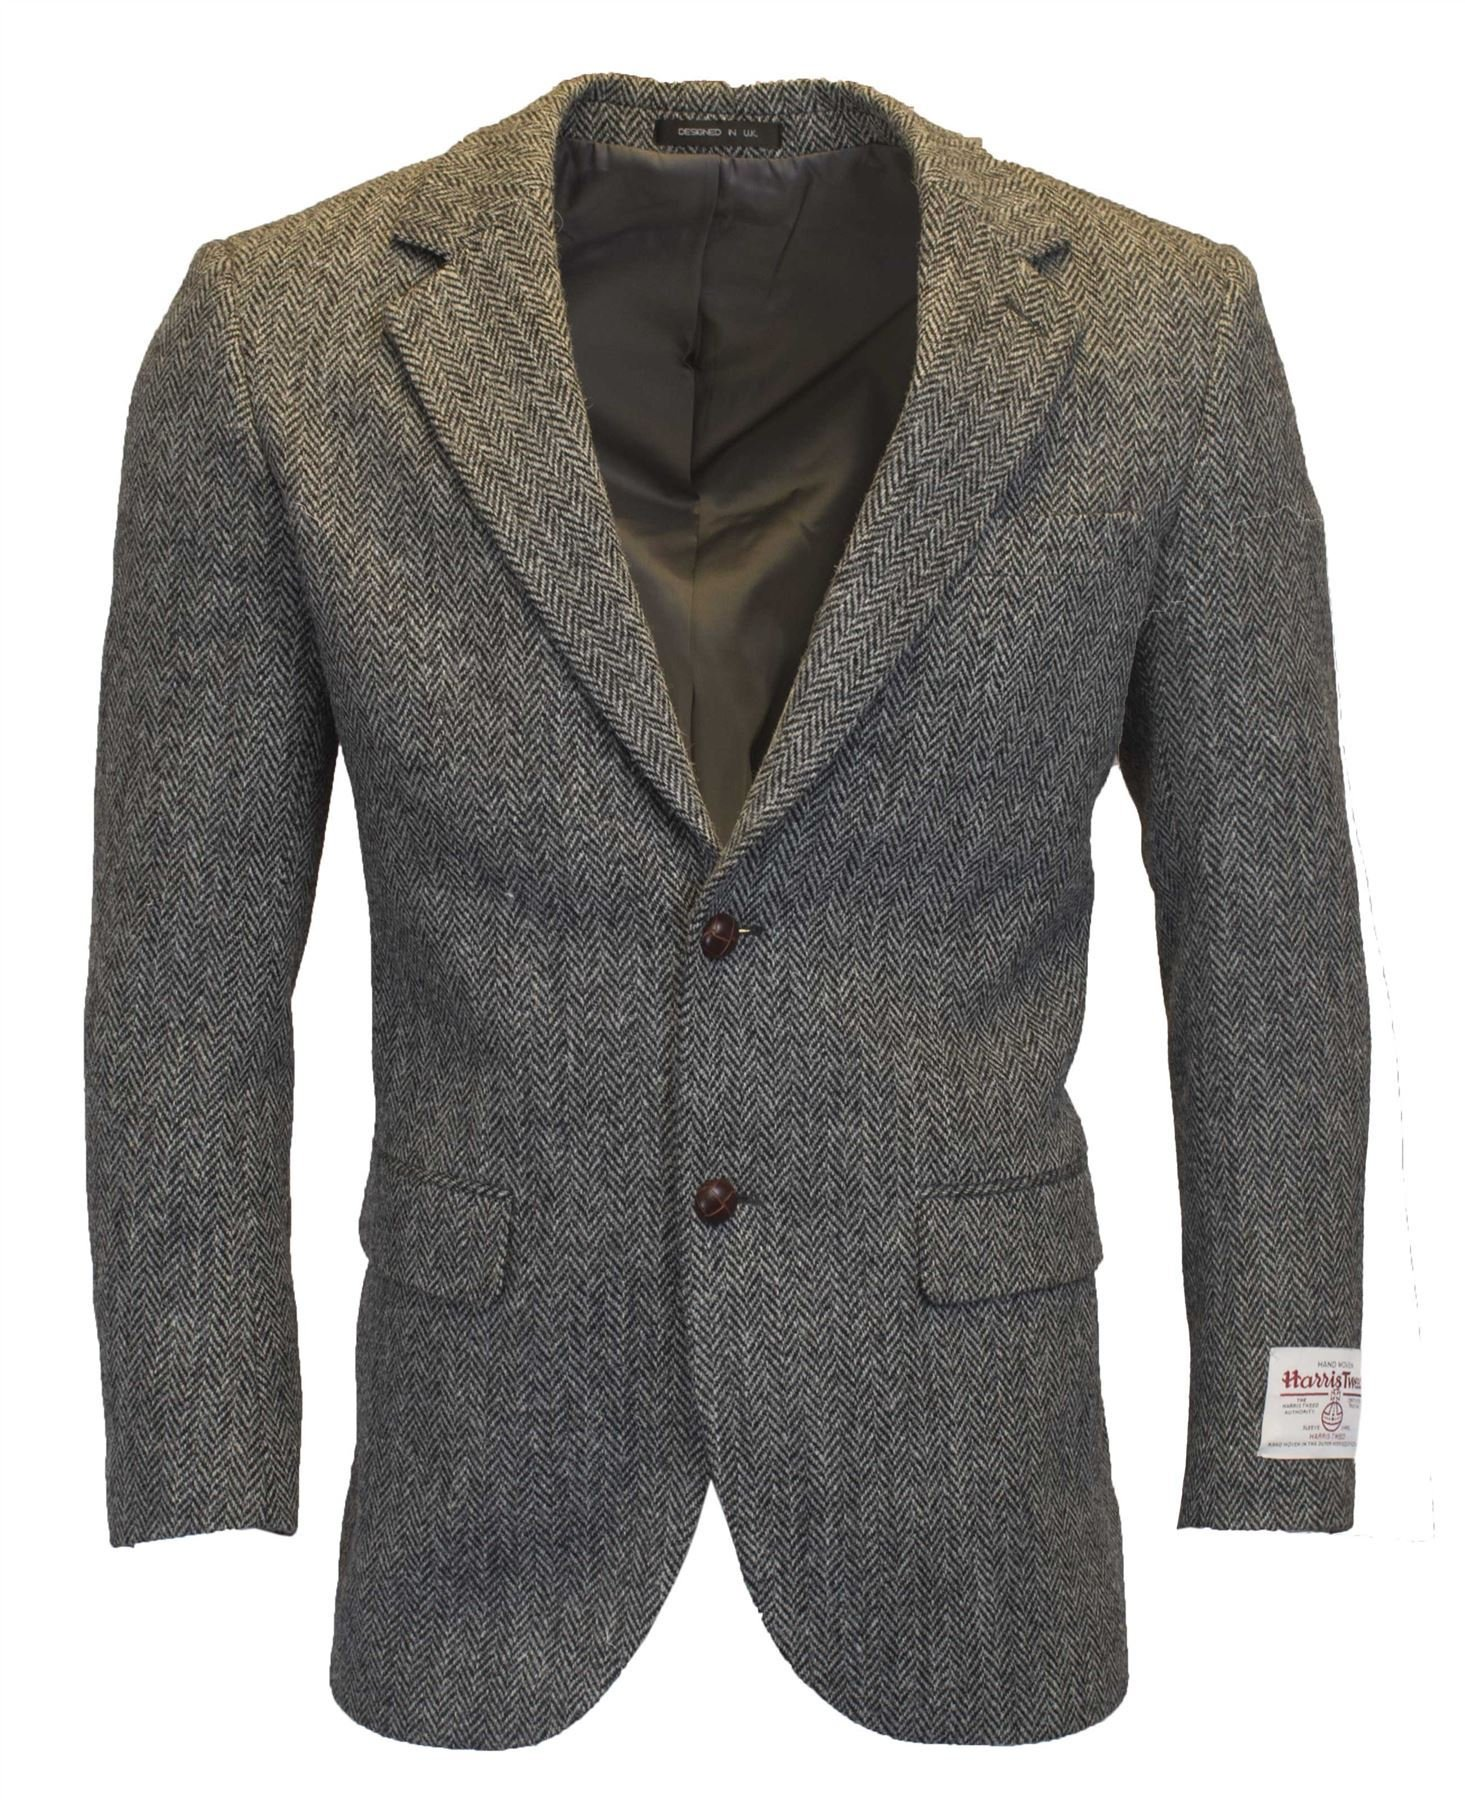 Walker and Hawkes Mens Classic Scottish Harris Tweed Herringbone Country Blazer Jacket - Steel Gray - 44 by Walker and Hawkes